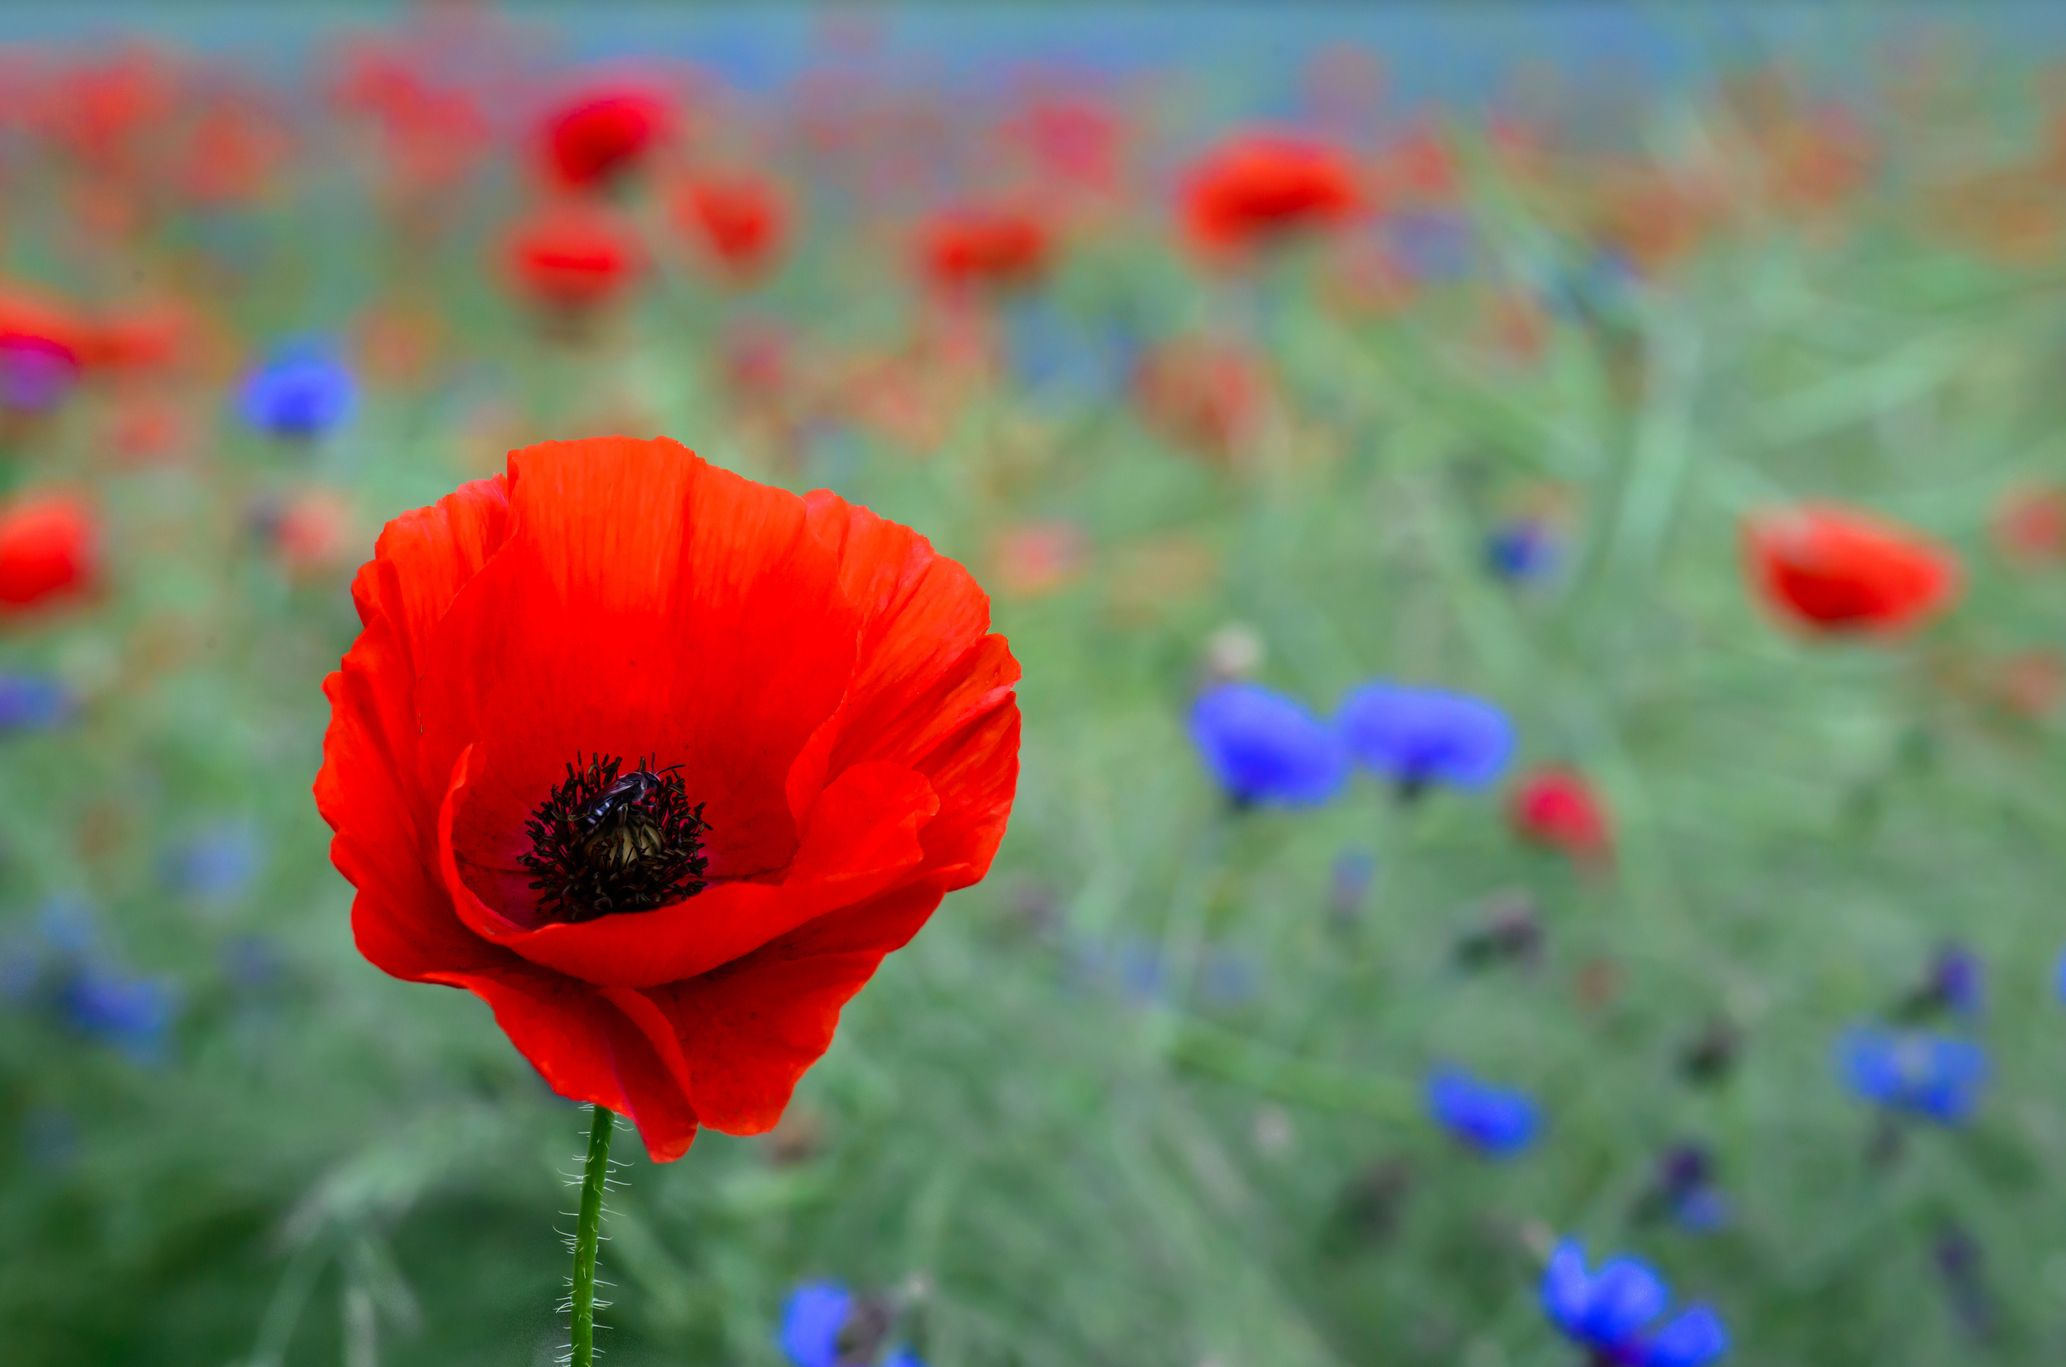 Poppy Flower Symbolism Of Red Poppies